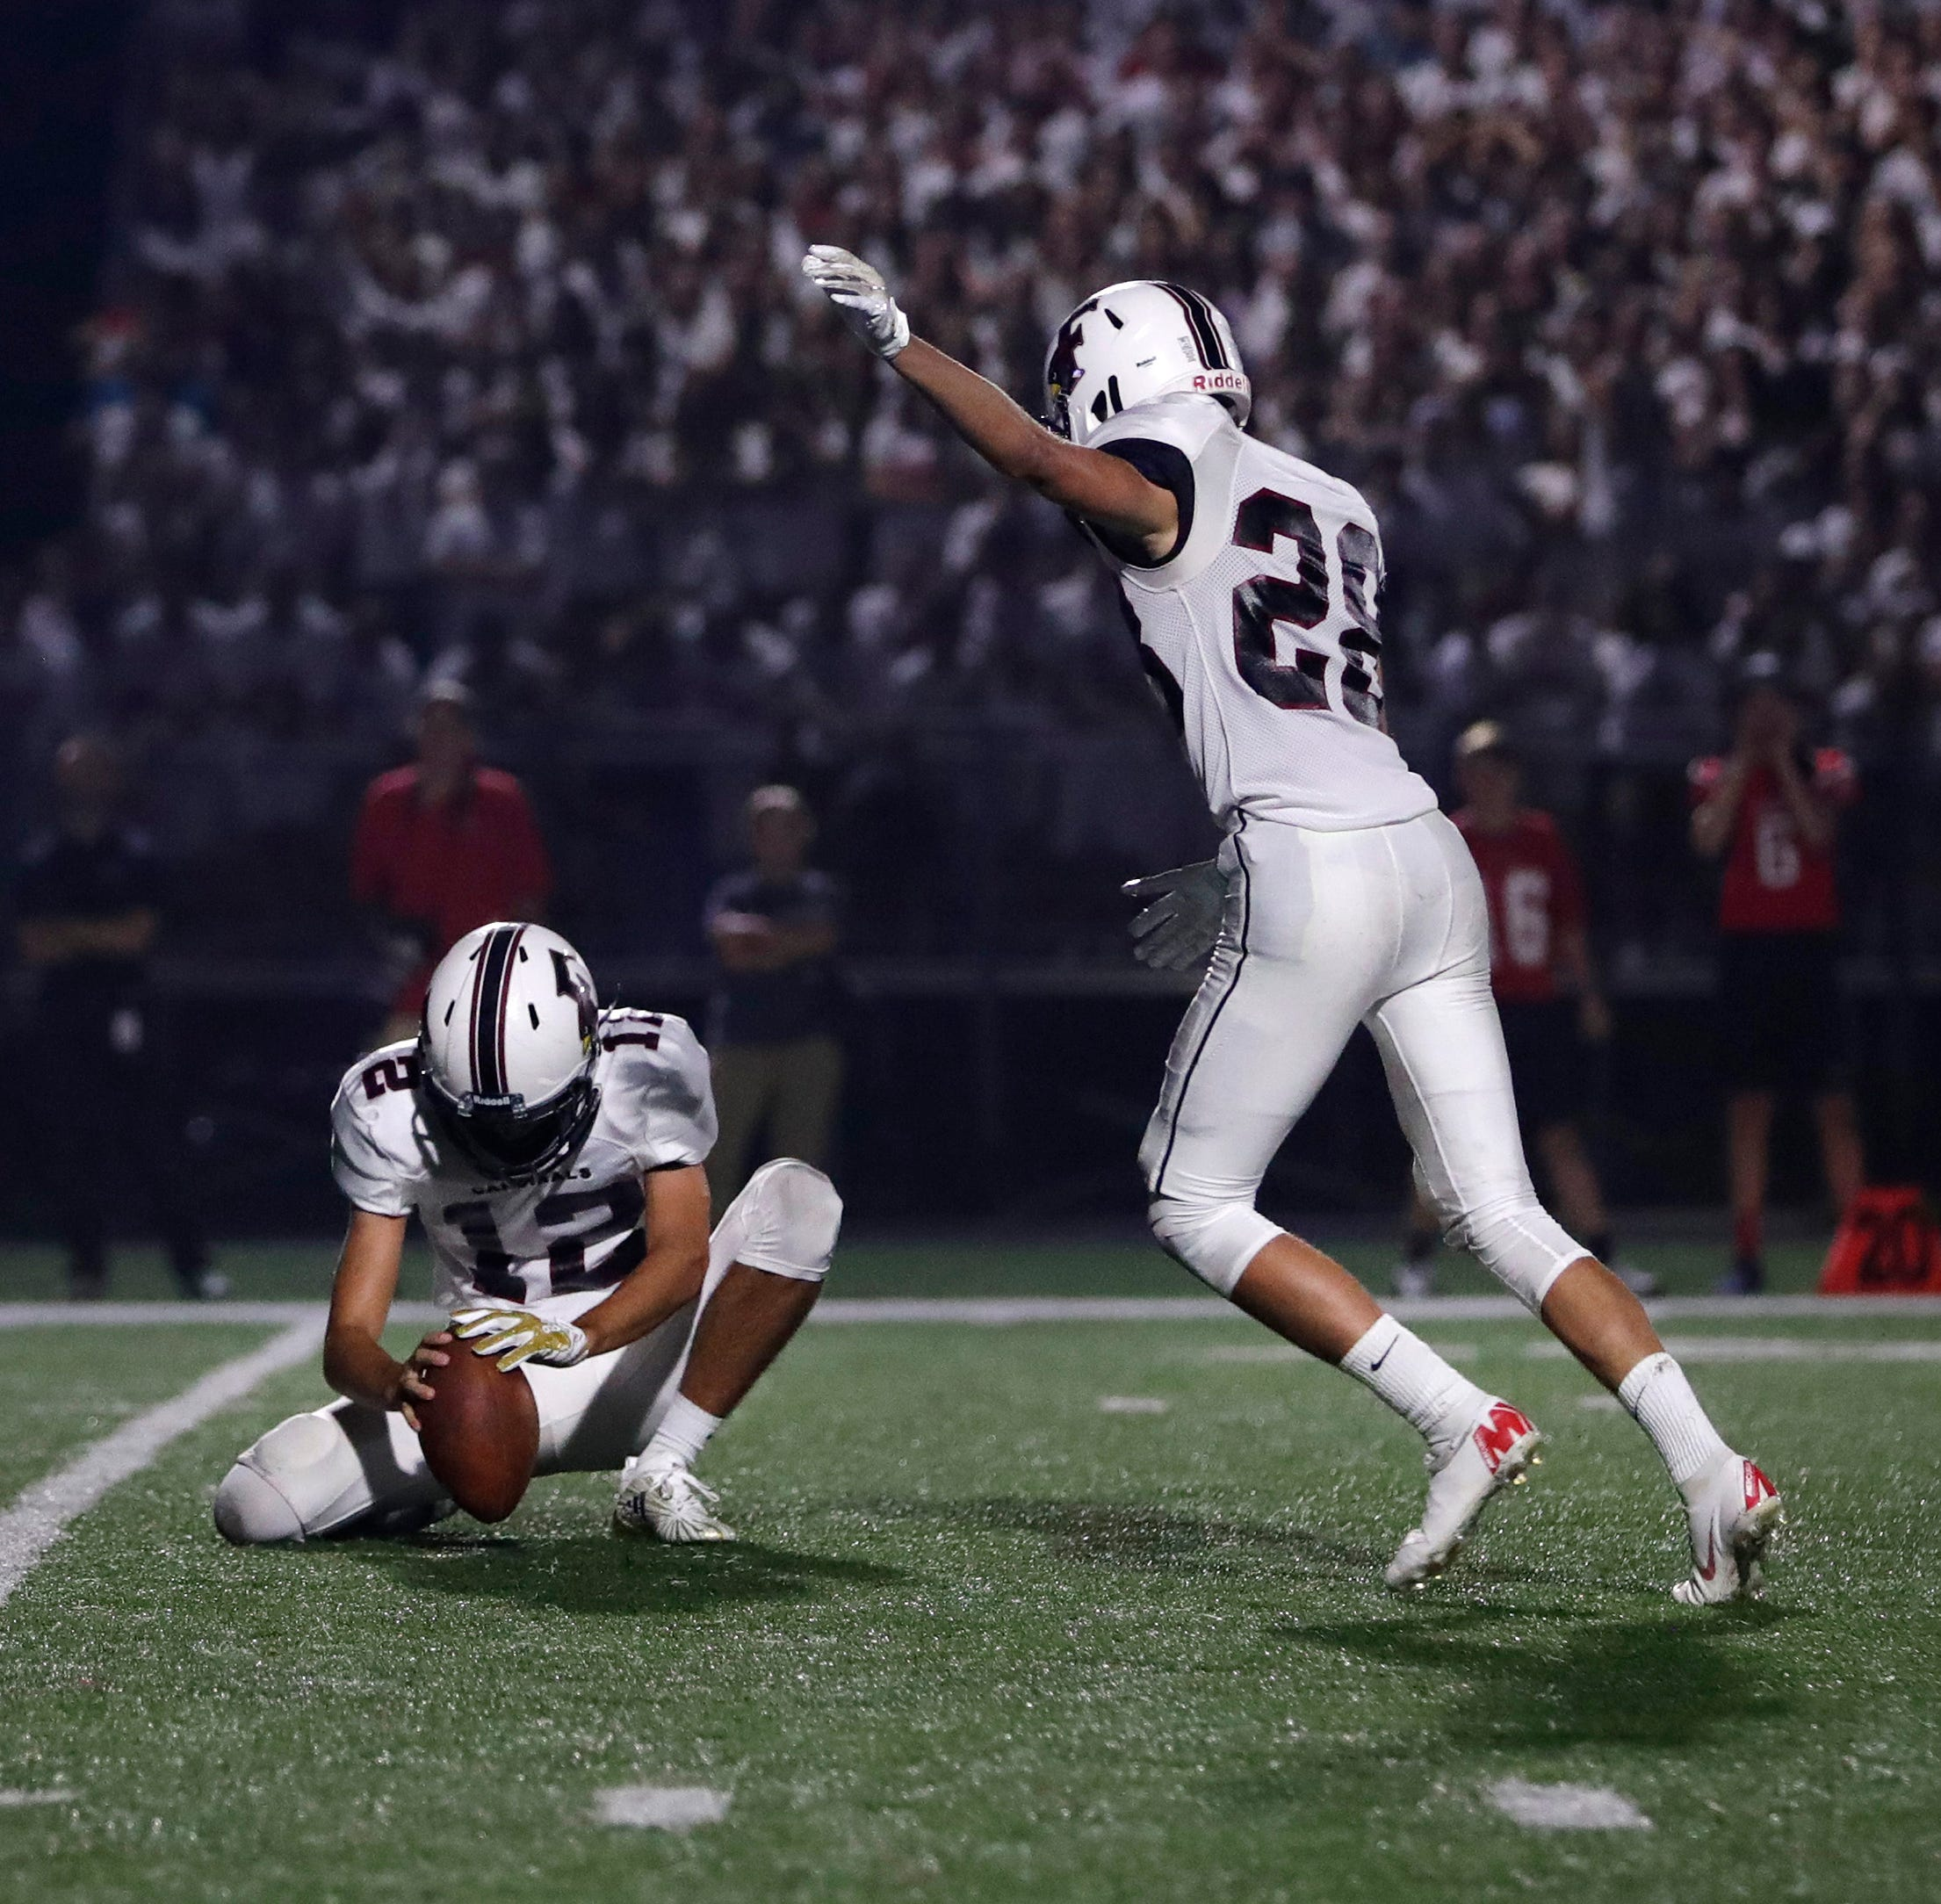 Top performers: Scheberl's game-winning kick for Fond du Lac lands him atop list